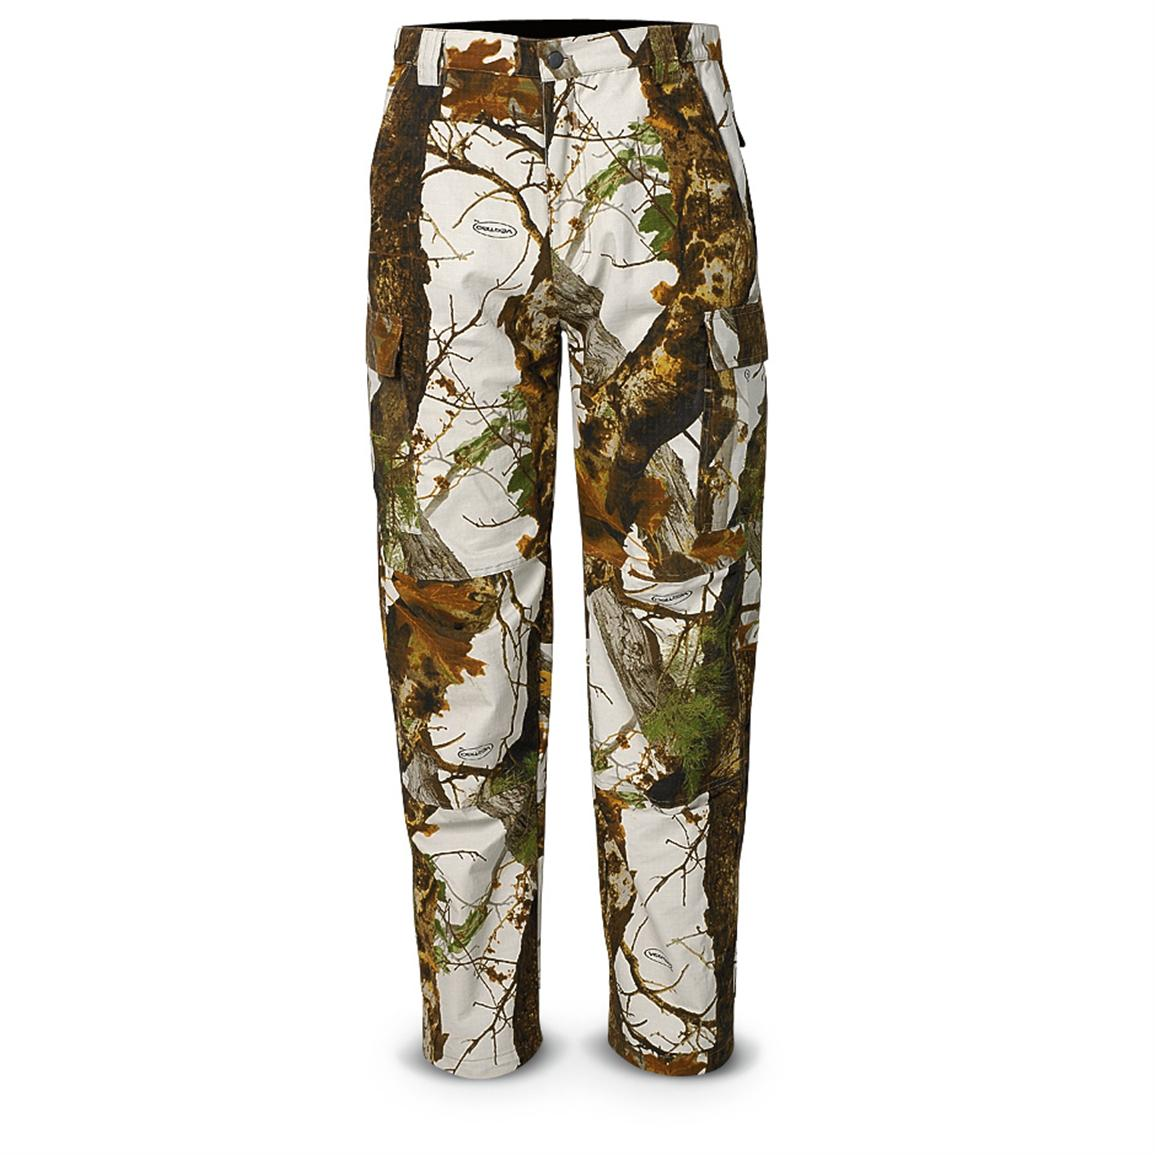 Native Species™ by Scent-Lok® DuraHunt 6-pocket Deluxe Pants, Vertigo® Gray